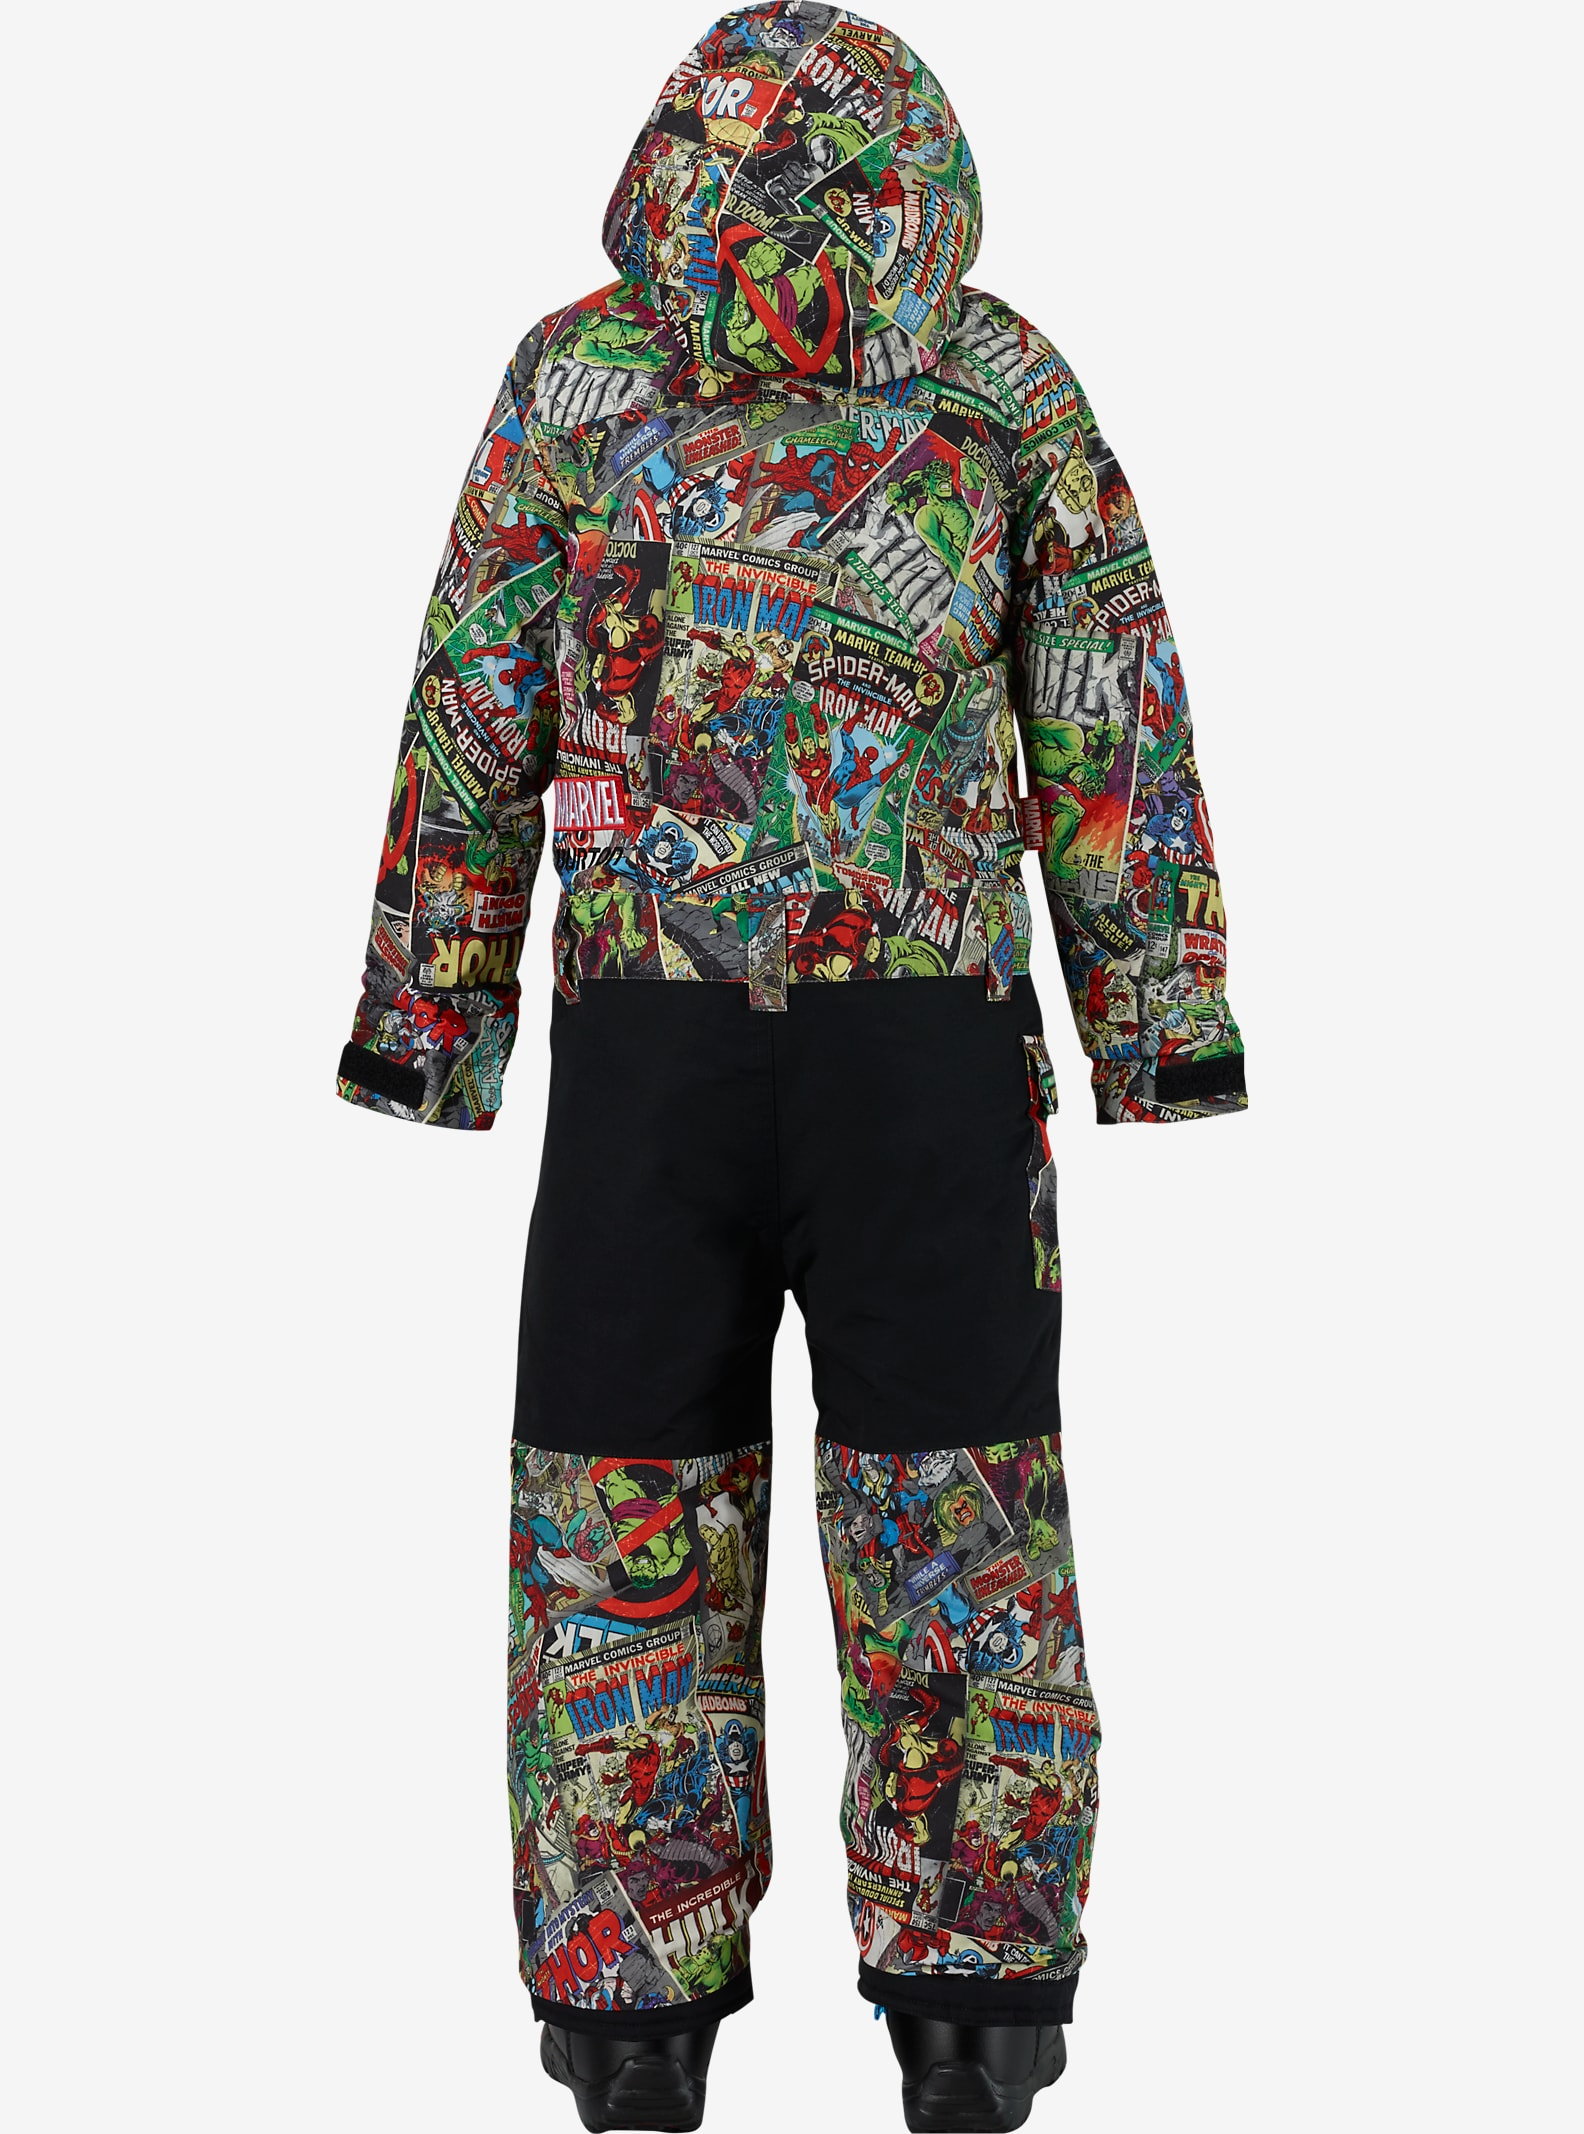 Marvel® x Burton Boys' Minishred Striker One Piece shown in Marvel © 2016 MARVEL